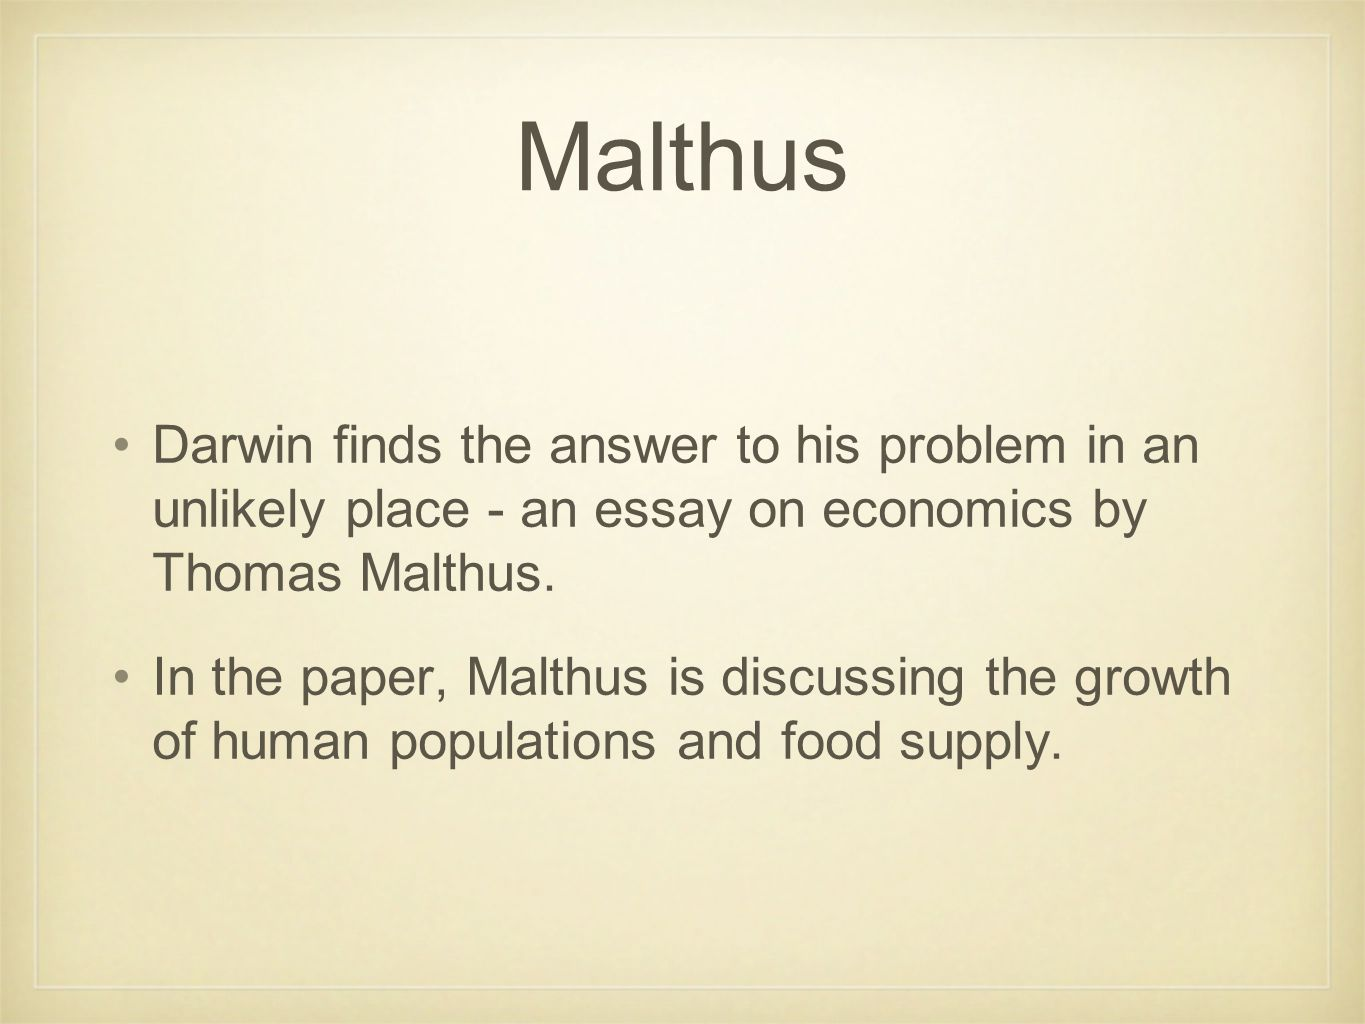 Malthus Darwin finds the answer to his problem in an unlikely place - an essay on economics by Thomas Malthus. In the paper, Malthus is discussing the